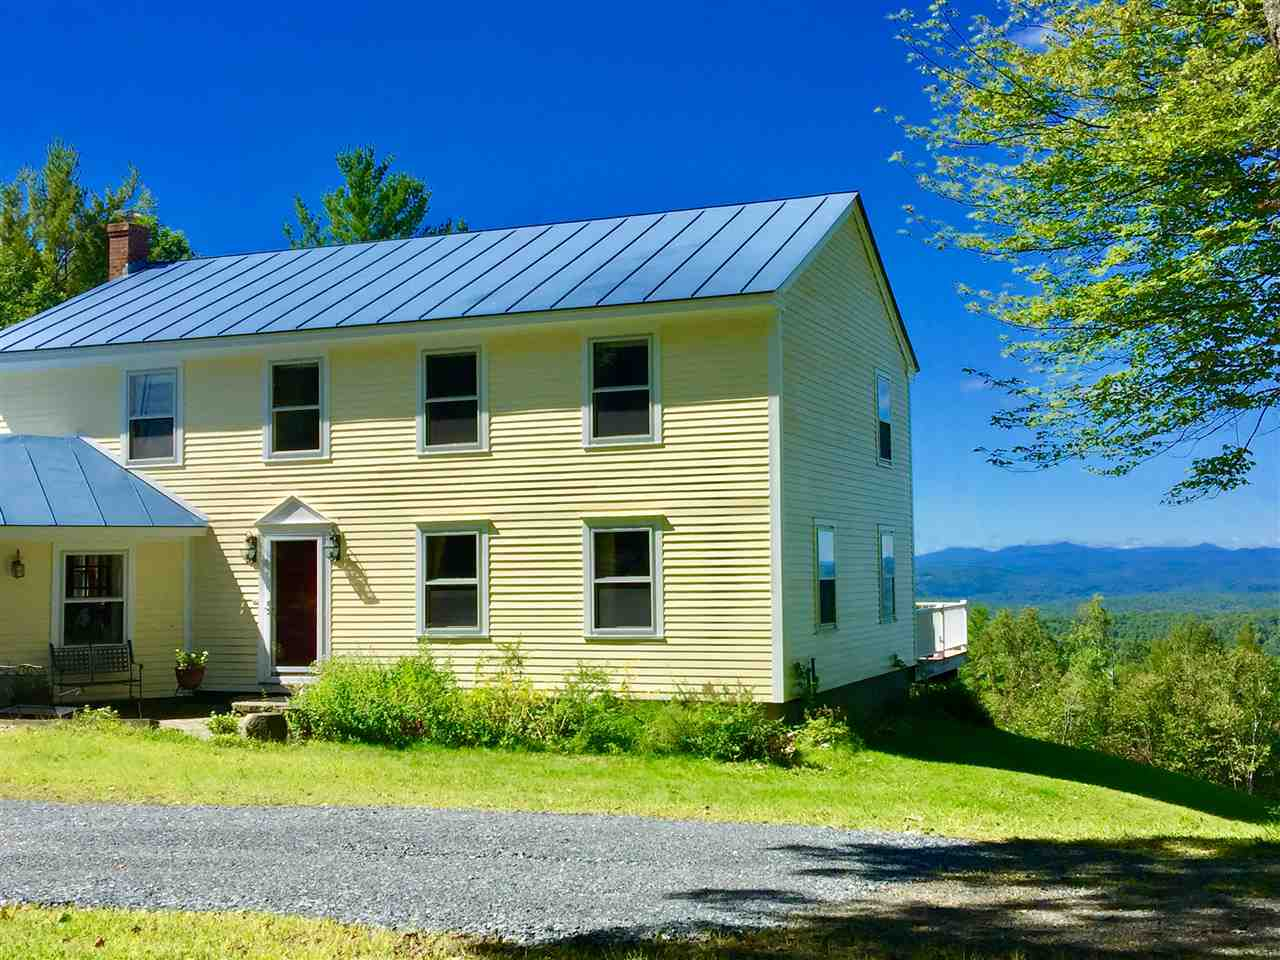 MLS 4781346: 1 Saddle Run Road, Hanover NH